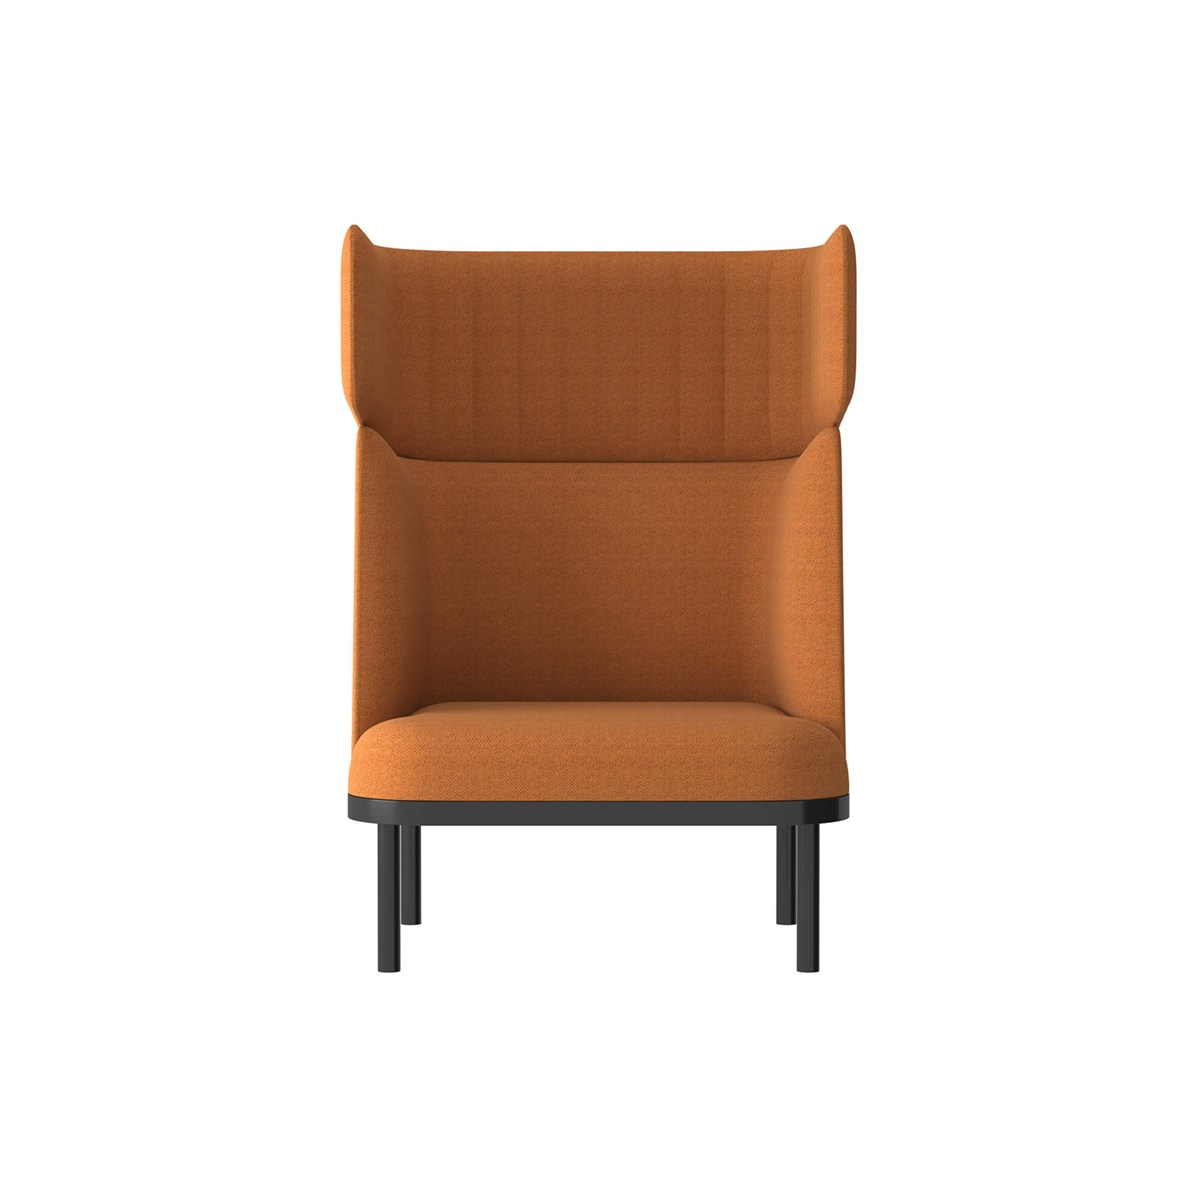 Neospace-Dwell-Sofa-High-Back-Contract-Matisse-1